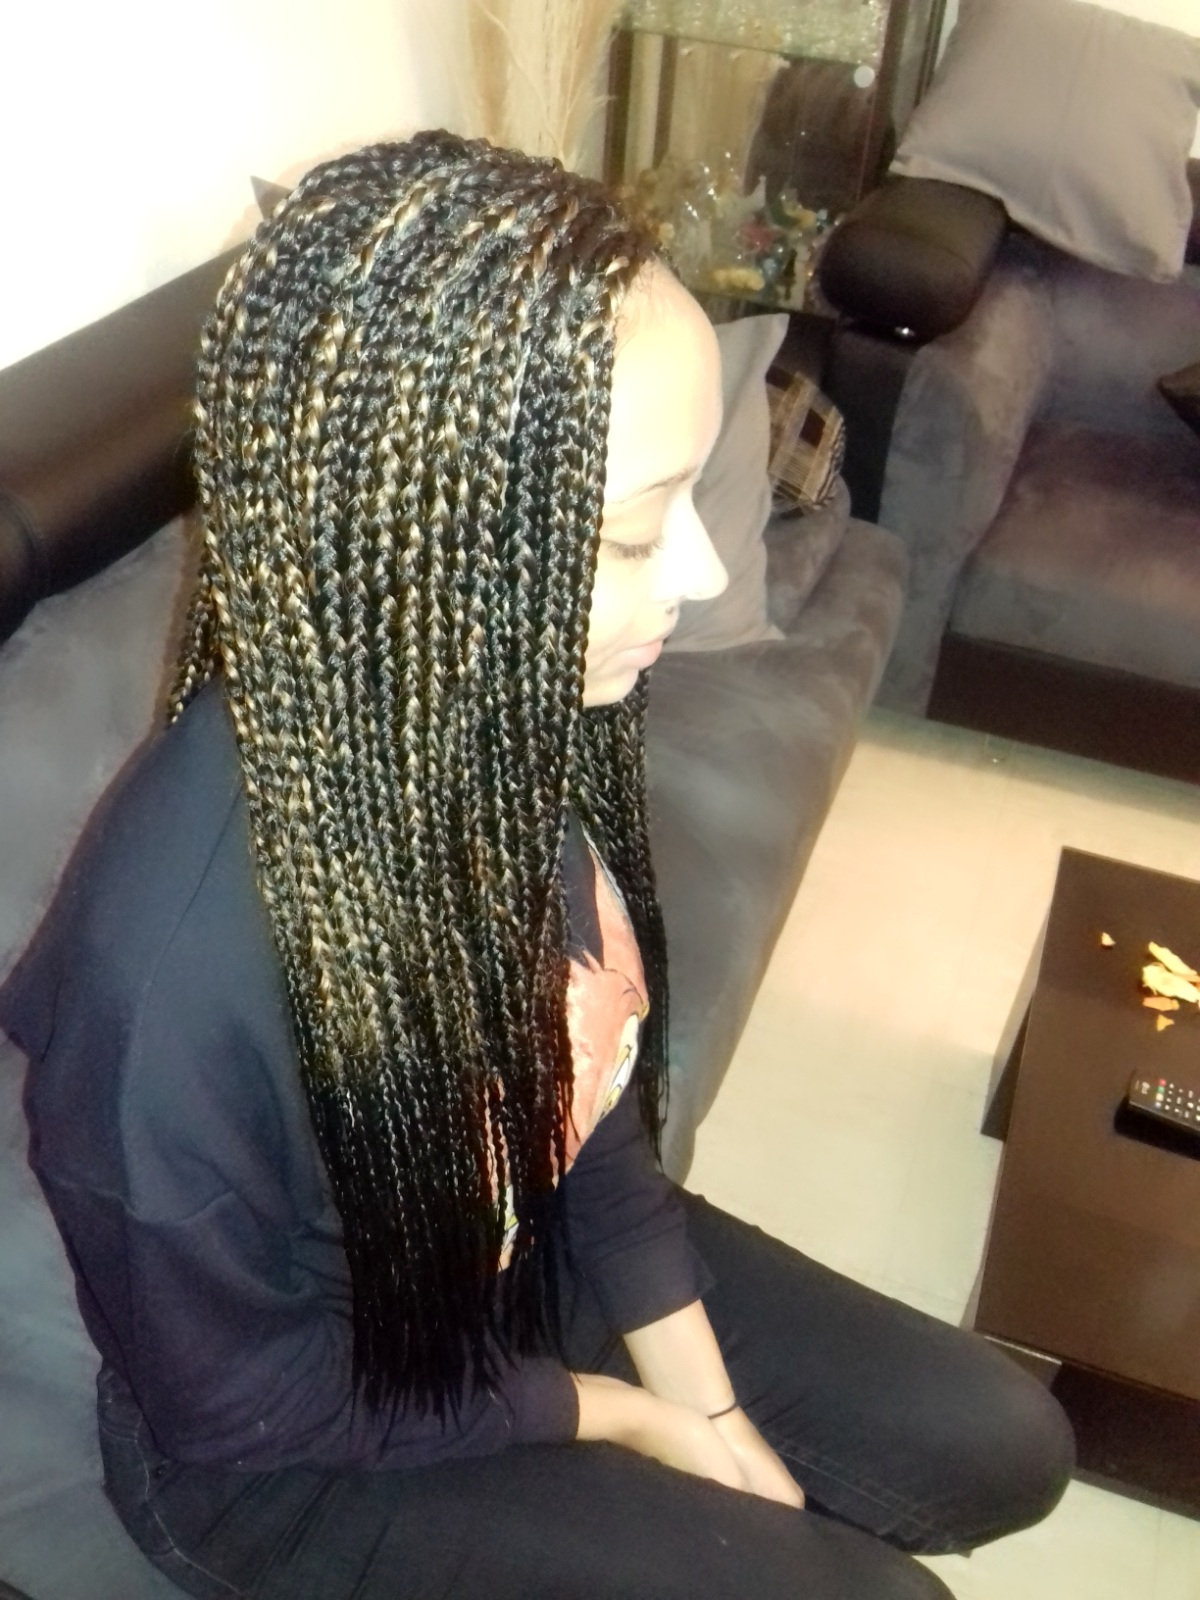 salon de coiffure afro tresse tresses box braids crochet braids vanilles tissages paris 75 77 78 91 92 93 94 95 VDMJUKXV